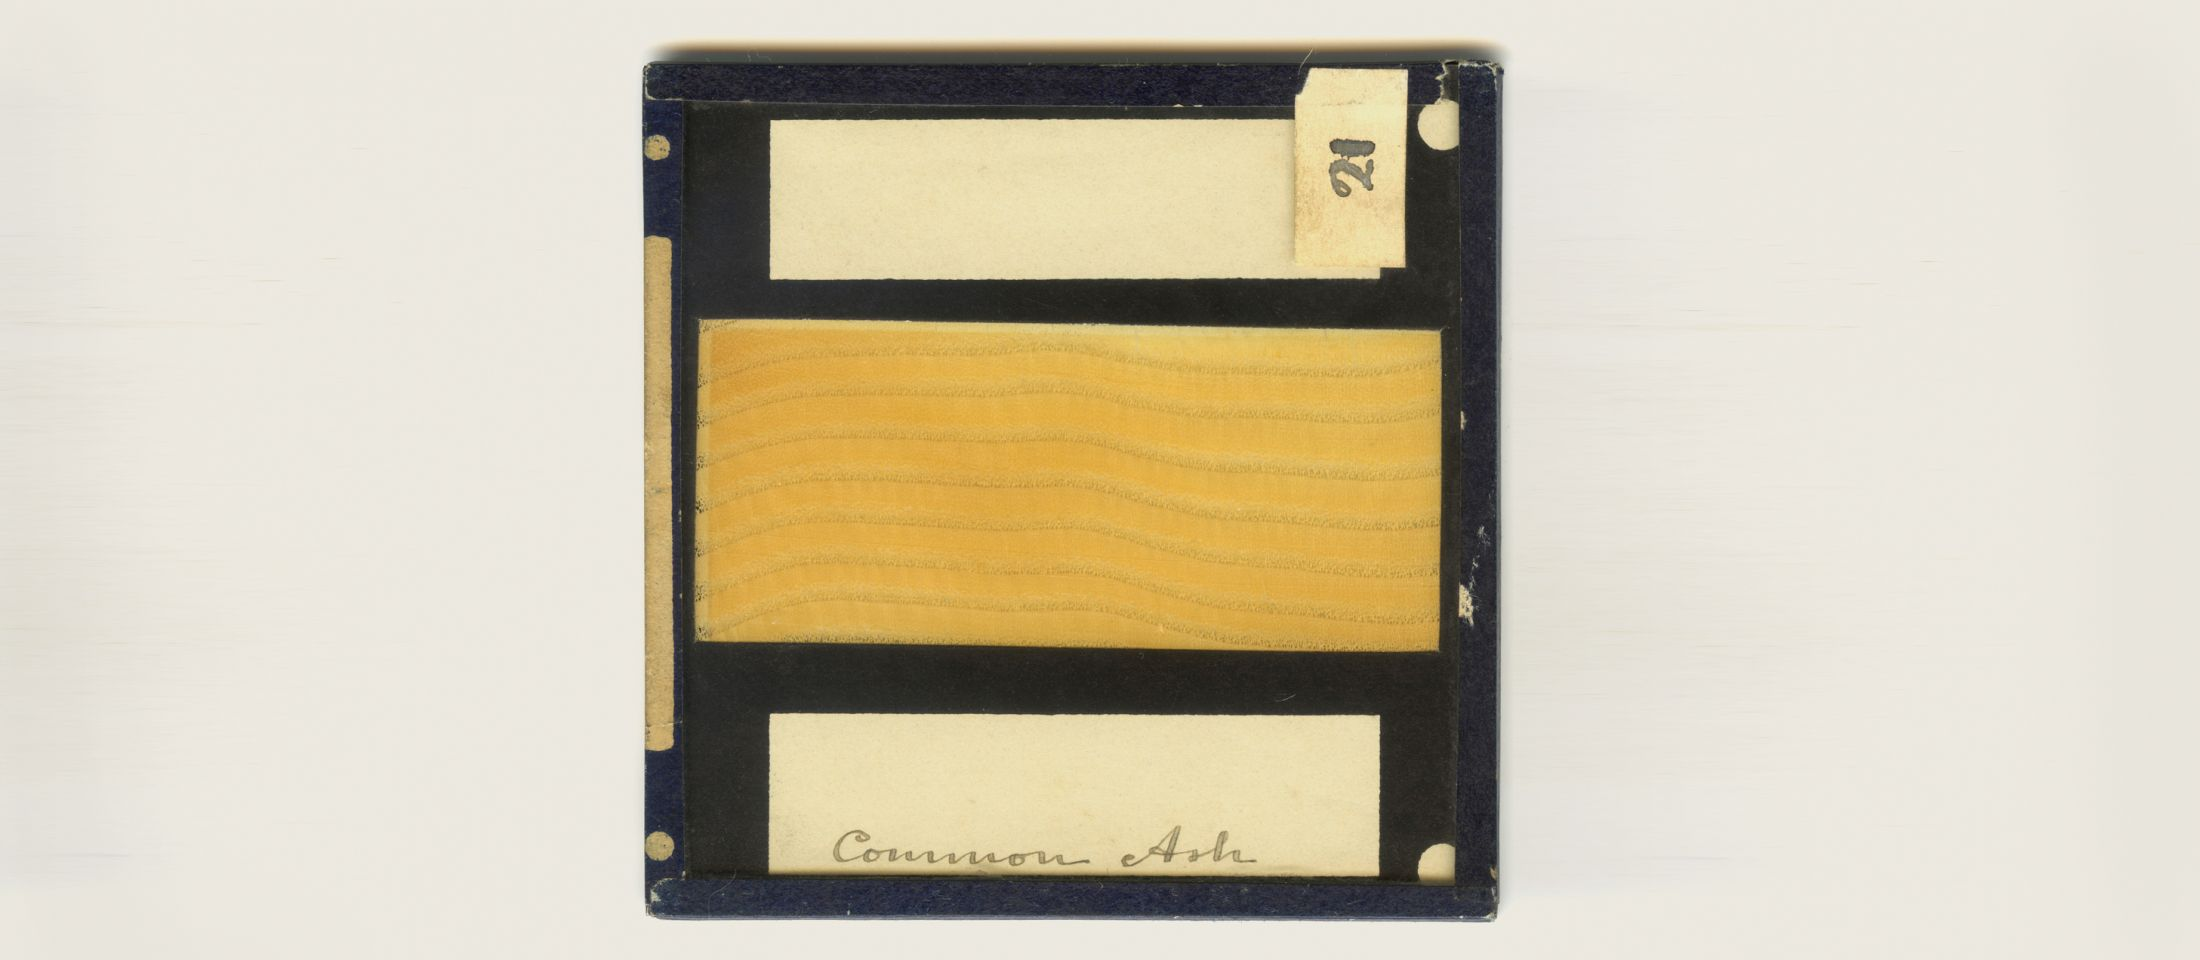 """Common Ash"" slide, found during R&D. Photo: Ackroyd and Harvey"